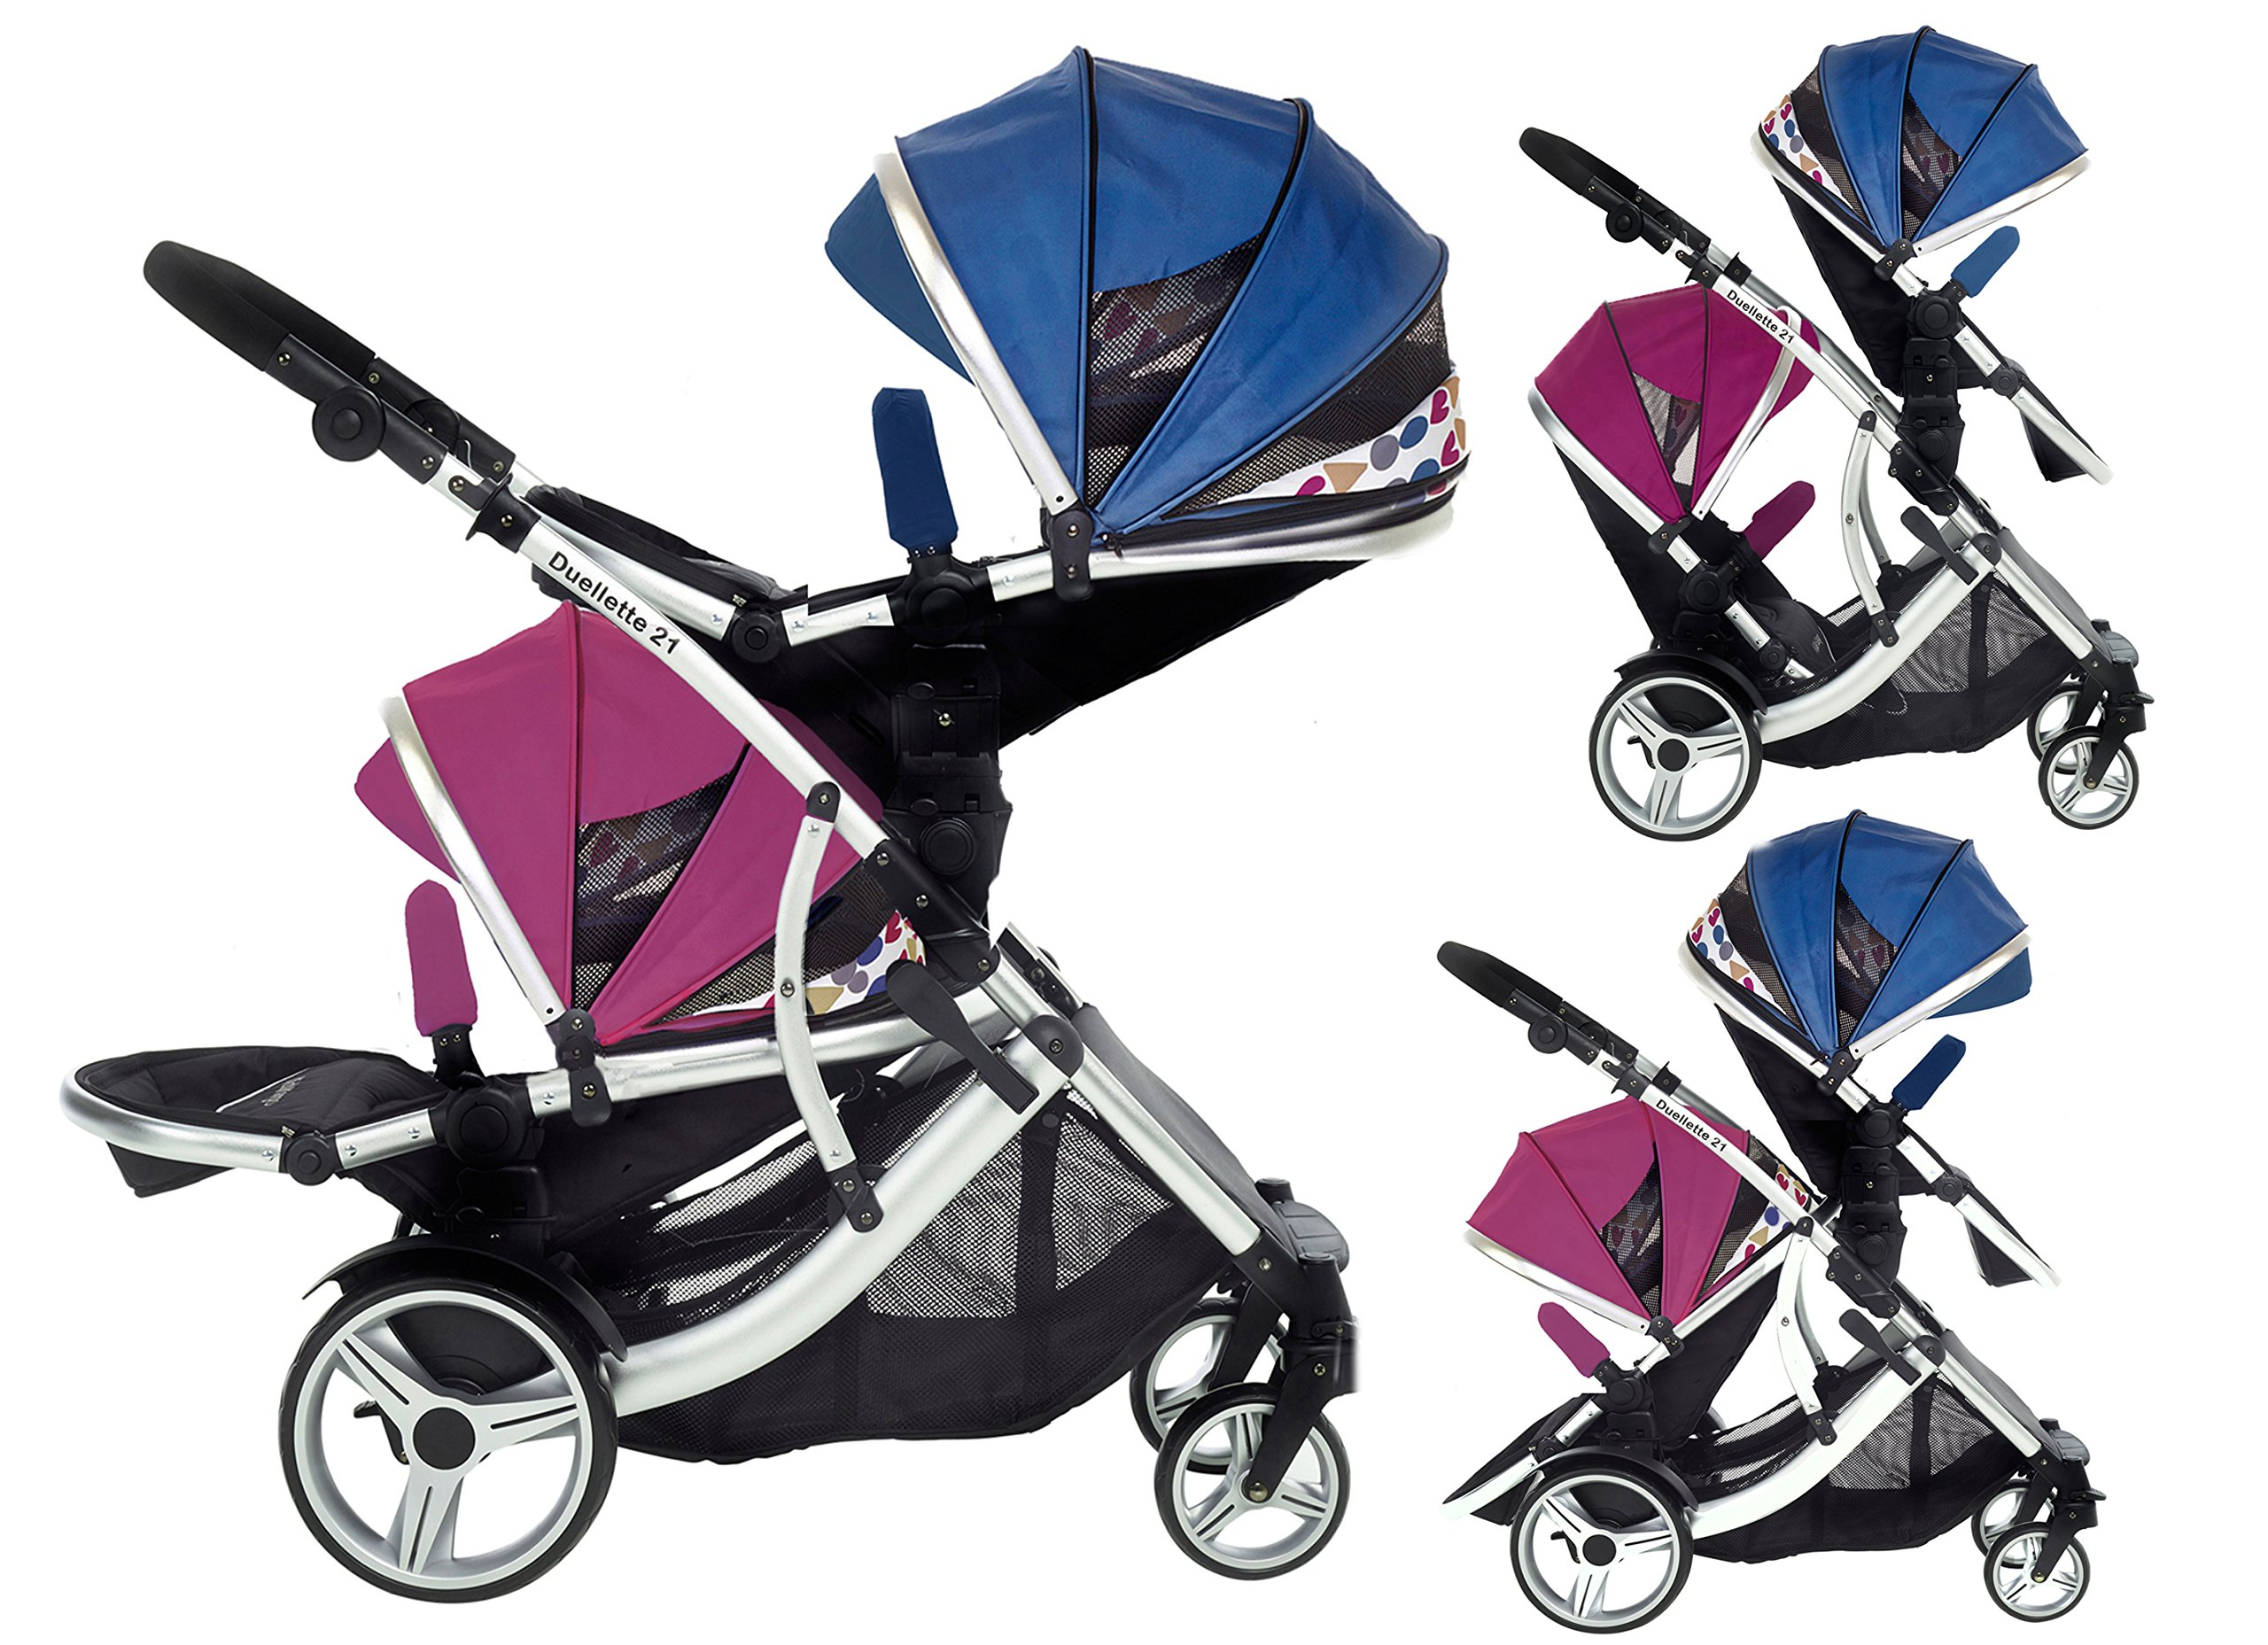 Kids Kargo Duellette 21 BS Travel System Pram Double Pushchair (Raspberry and Blueberry) Kids Kargo Suitability Newborn Twins (if used with car seats) or Newborn/toddler. Various seat positions. Both seats can face mum (ideal for twins) Accommodates 1 or 2 car seats 1